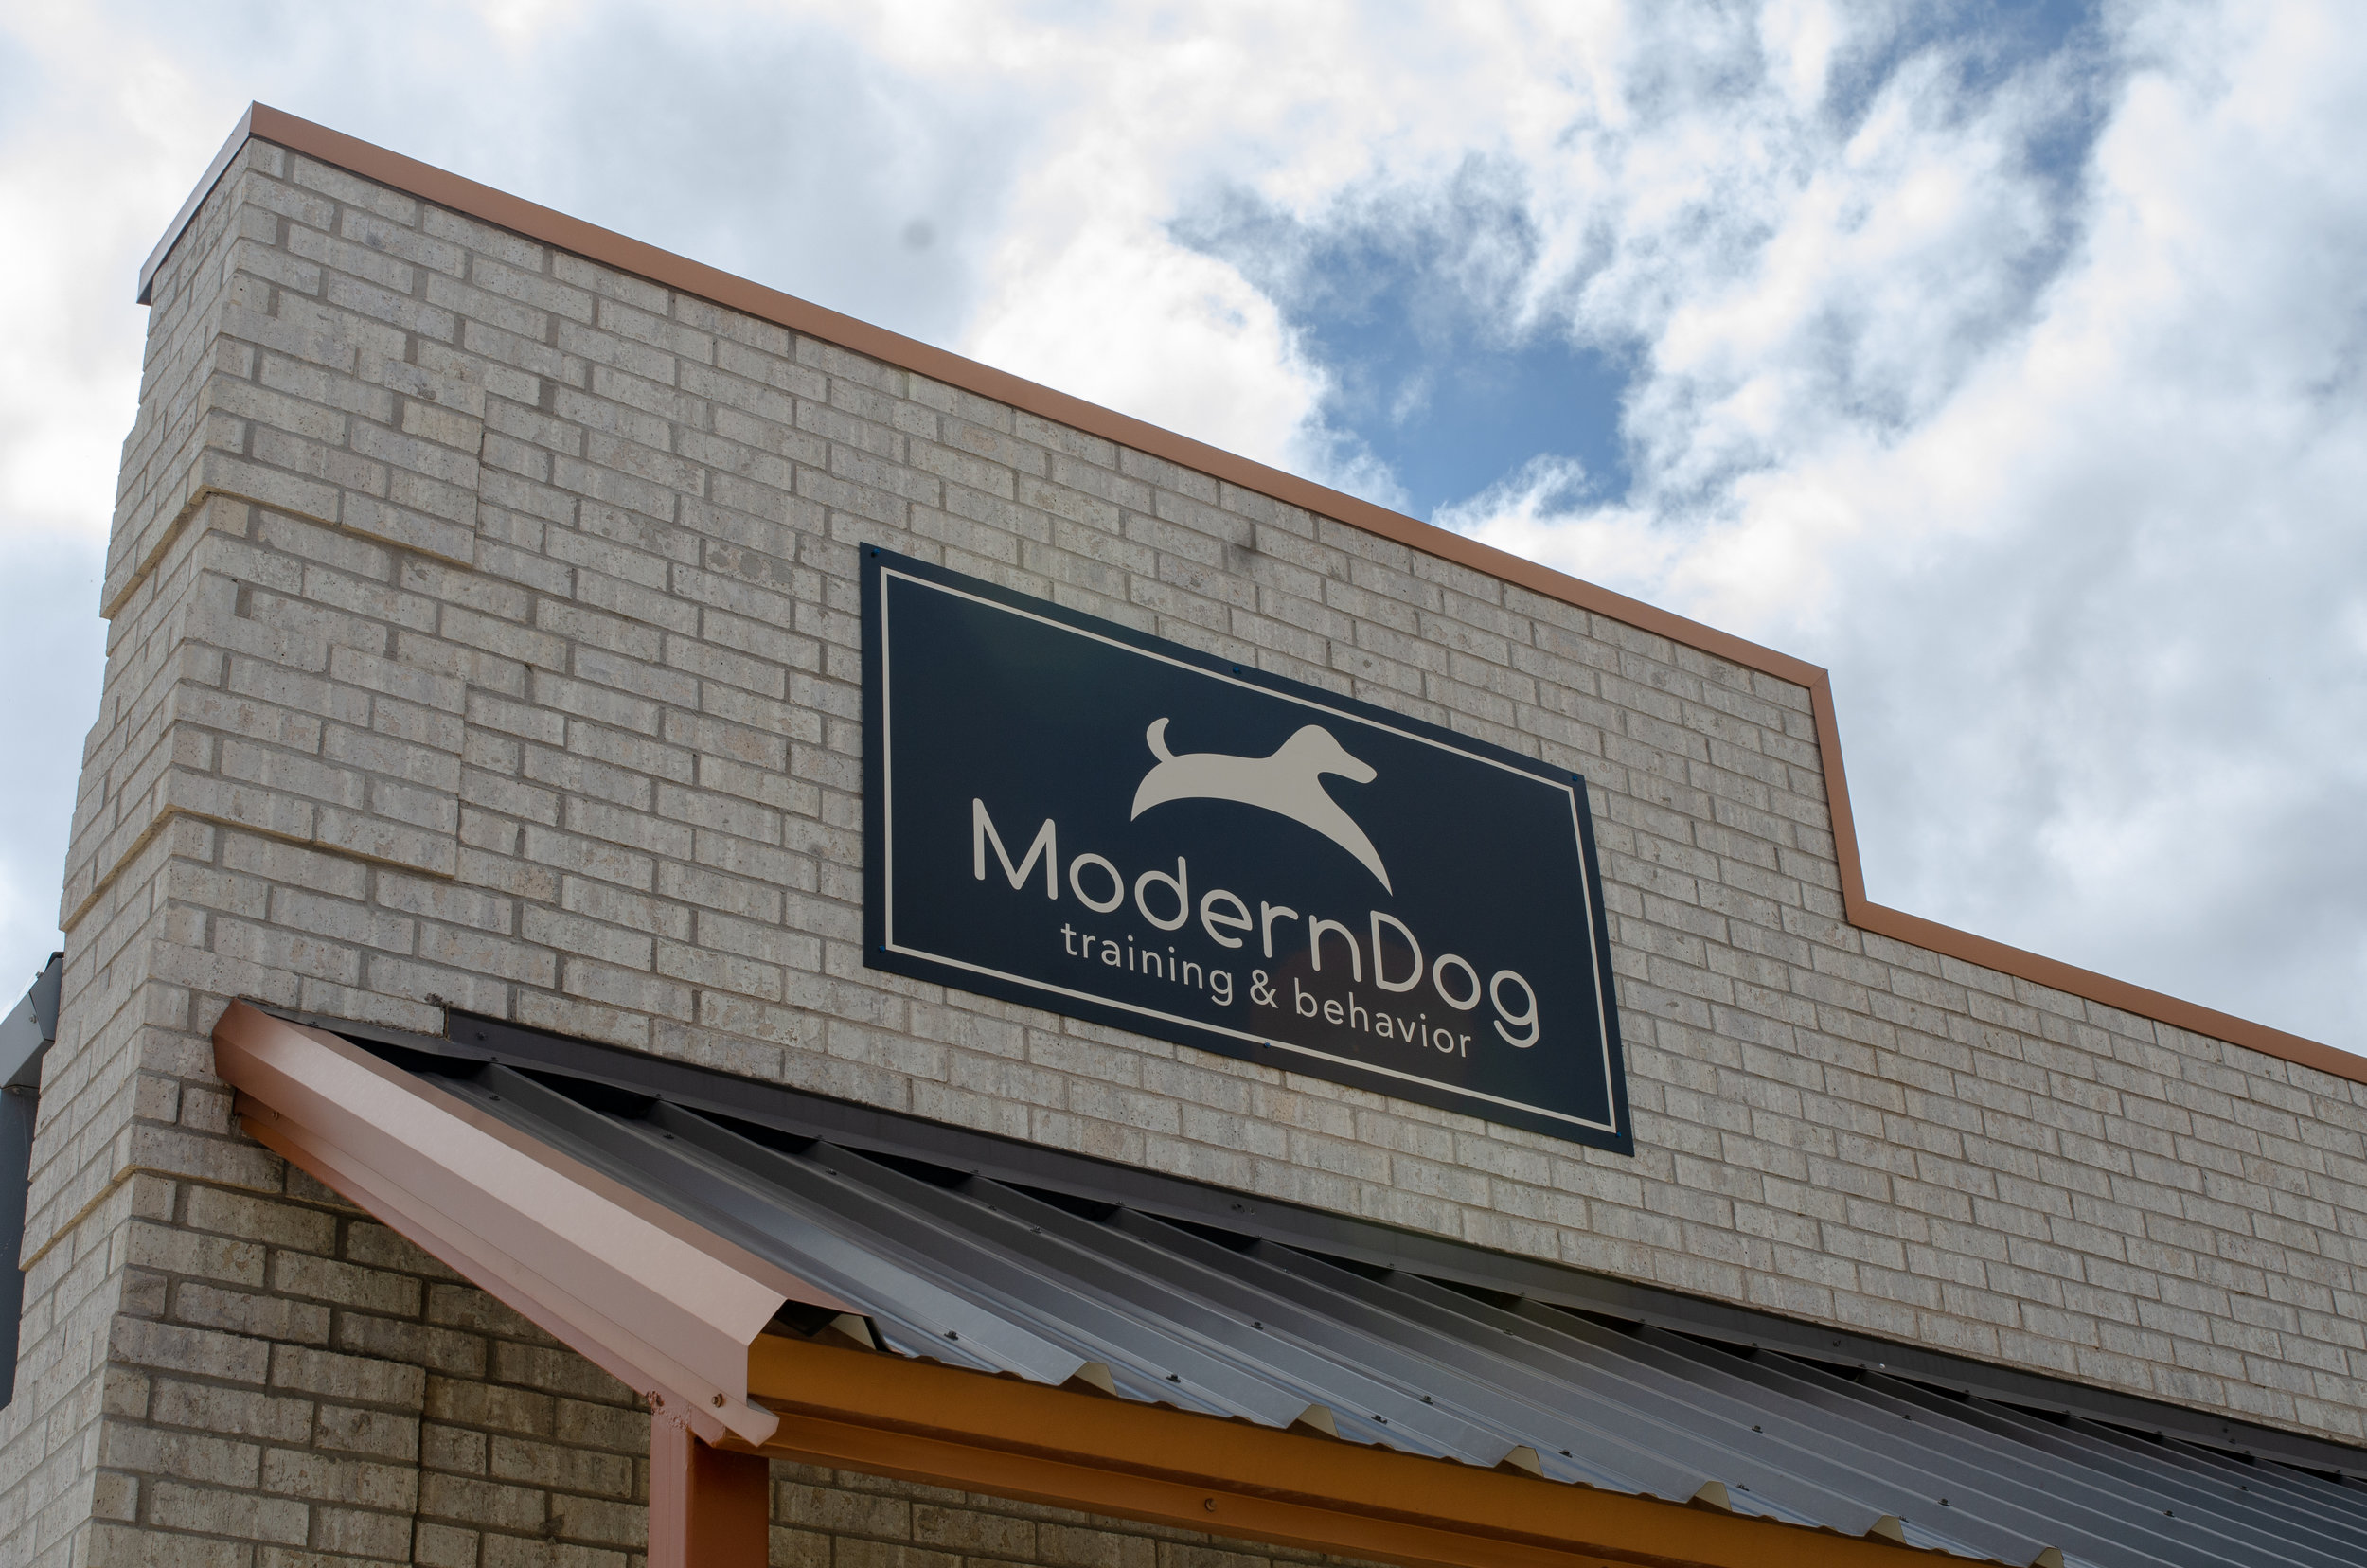 Store info - Phone Number - (806) 893-8275Location - 12411 Univesity Ave Suite #1Social Media -FacebookInstagramWebsite -http://www.moderndoglbk.com/Store Hours -By appointment